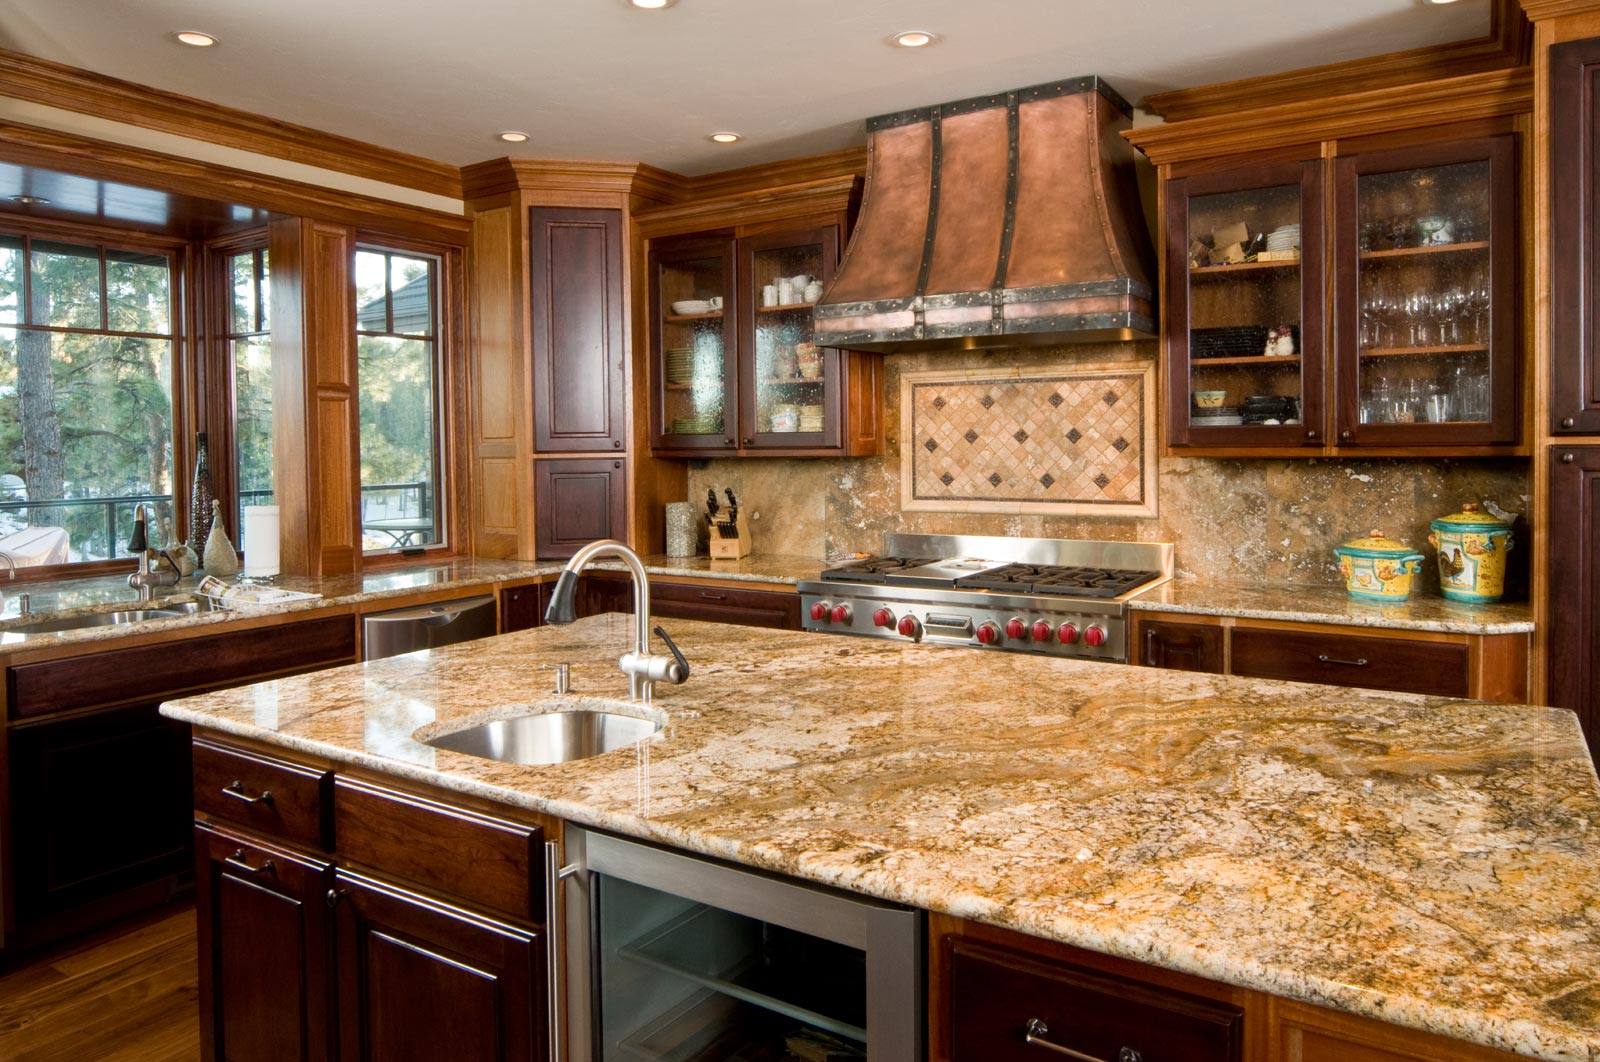 Granite Tops For Kitchen : ... kitchen countertops many older kitchens featured laminate countertops